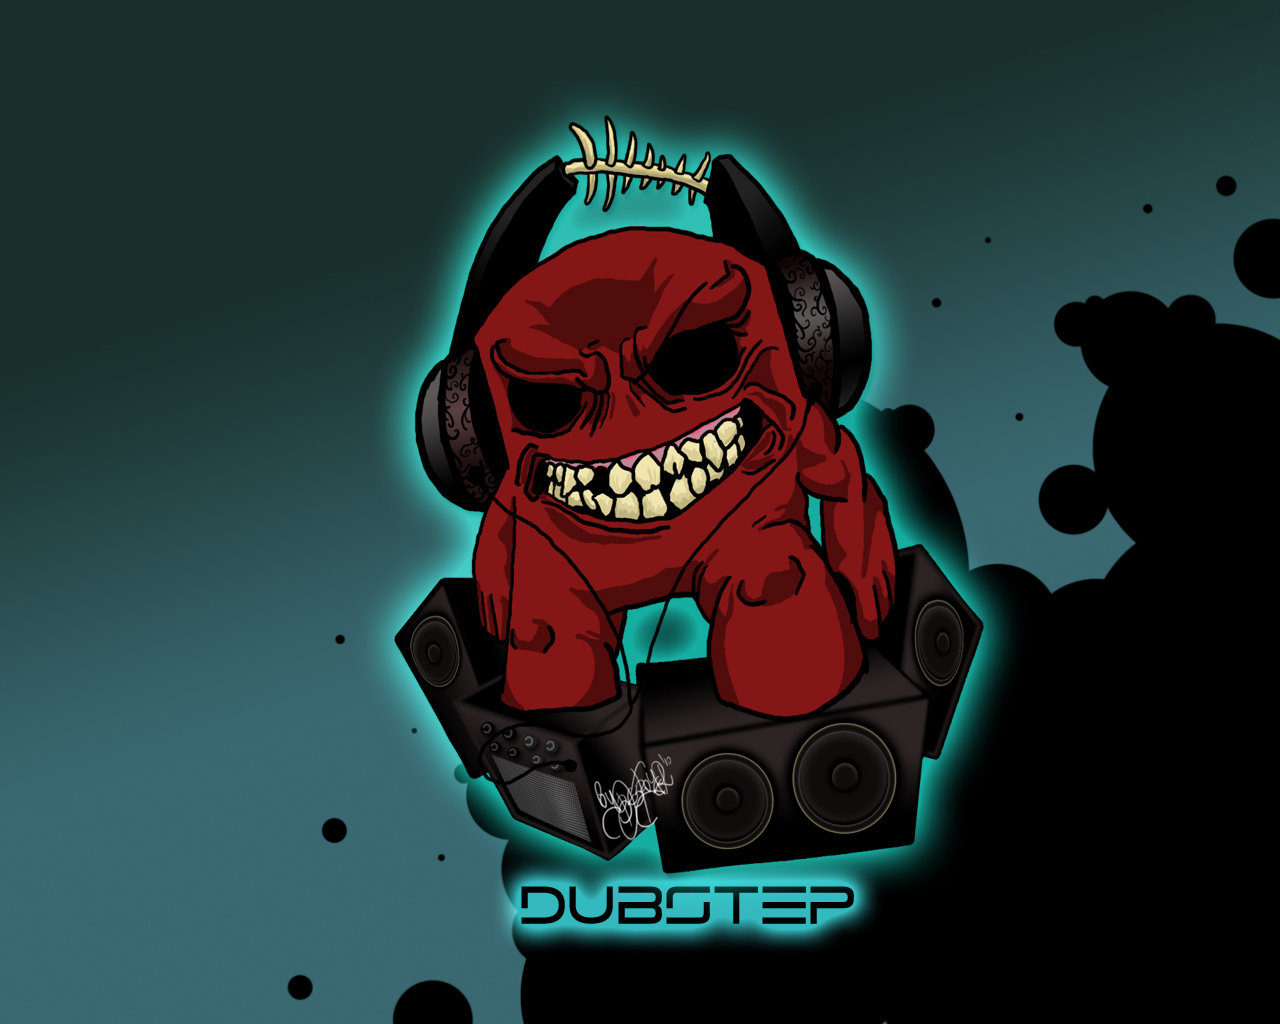 Awesome Dubstep Free Wallpaper ID11179 For Hd 1280x1024 Desktop